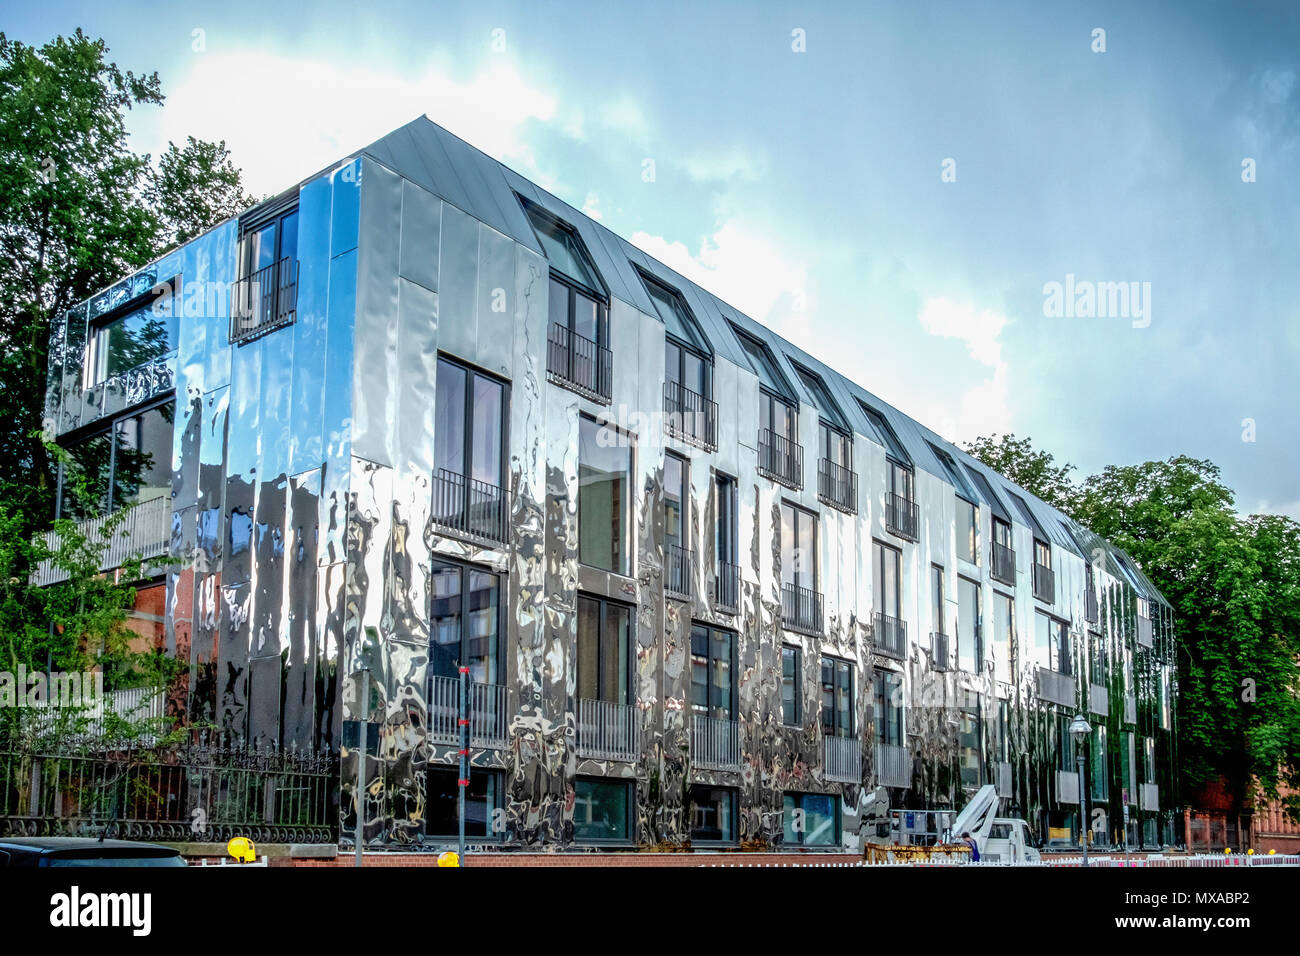 Berlin Moabit Sauerbruch Hutton Haus 6 . View of shiny new mirrored ...